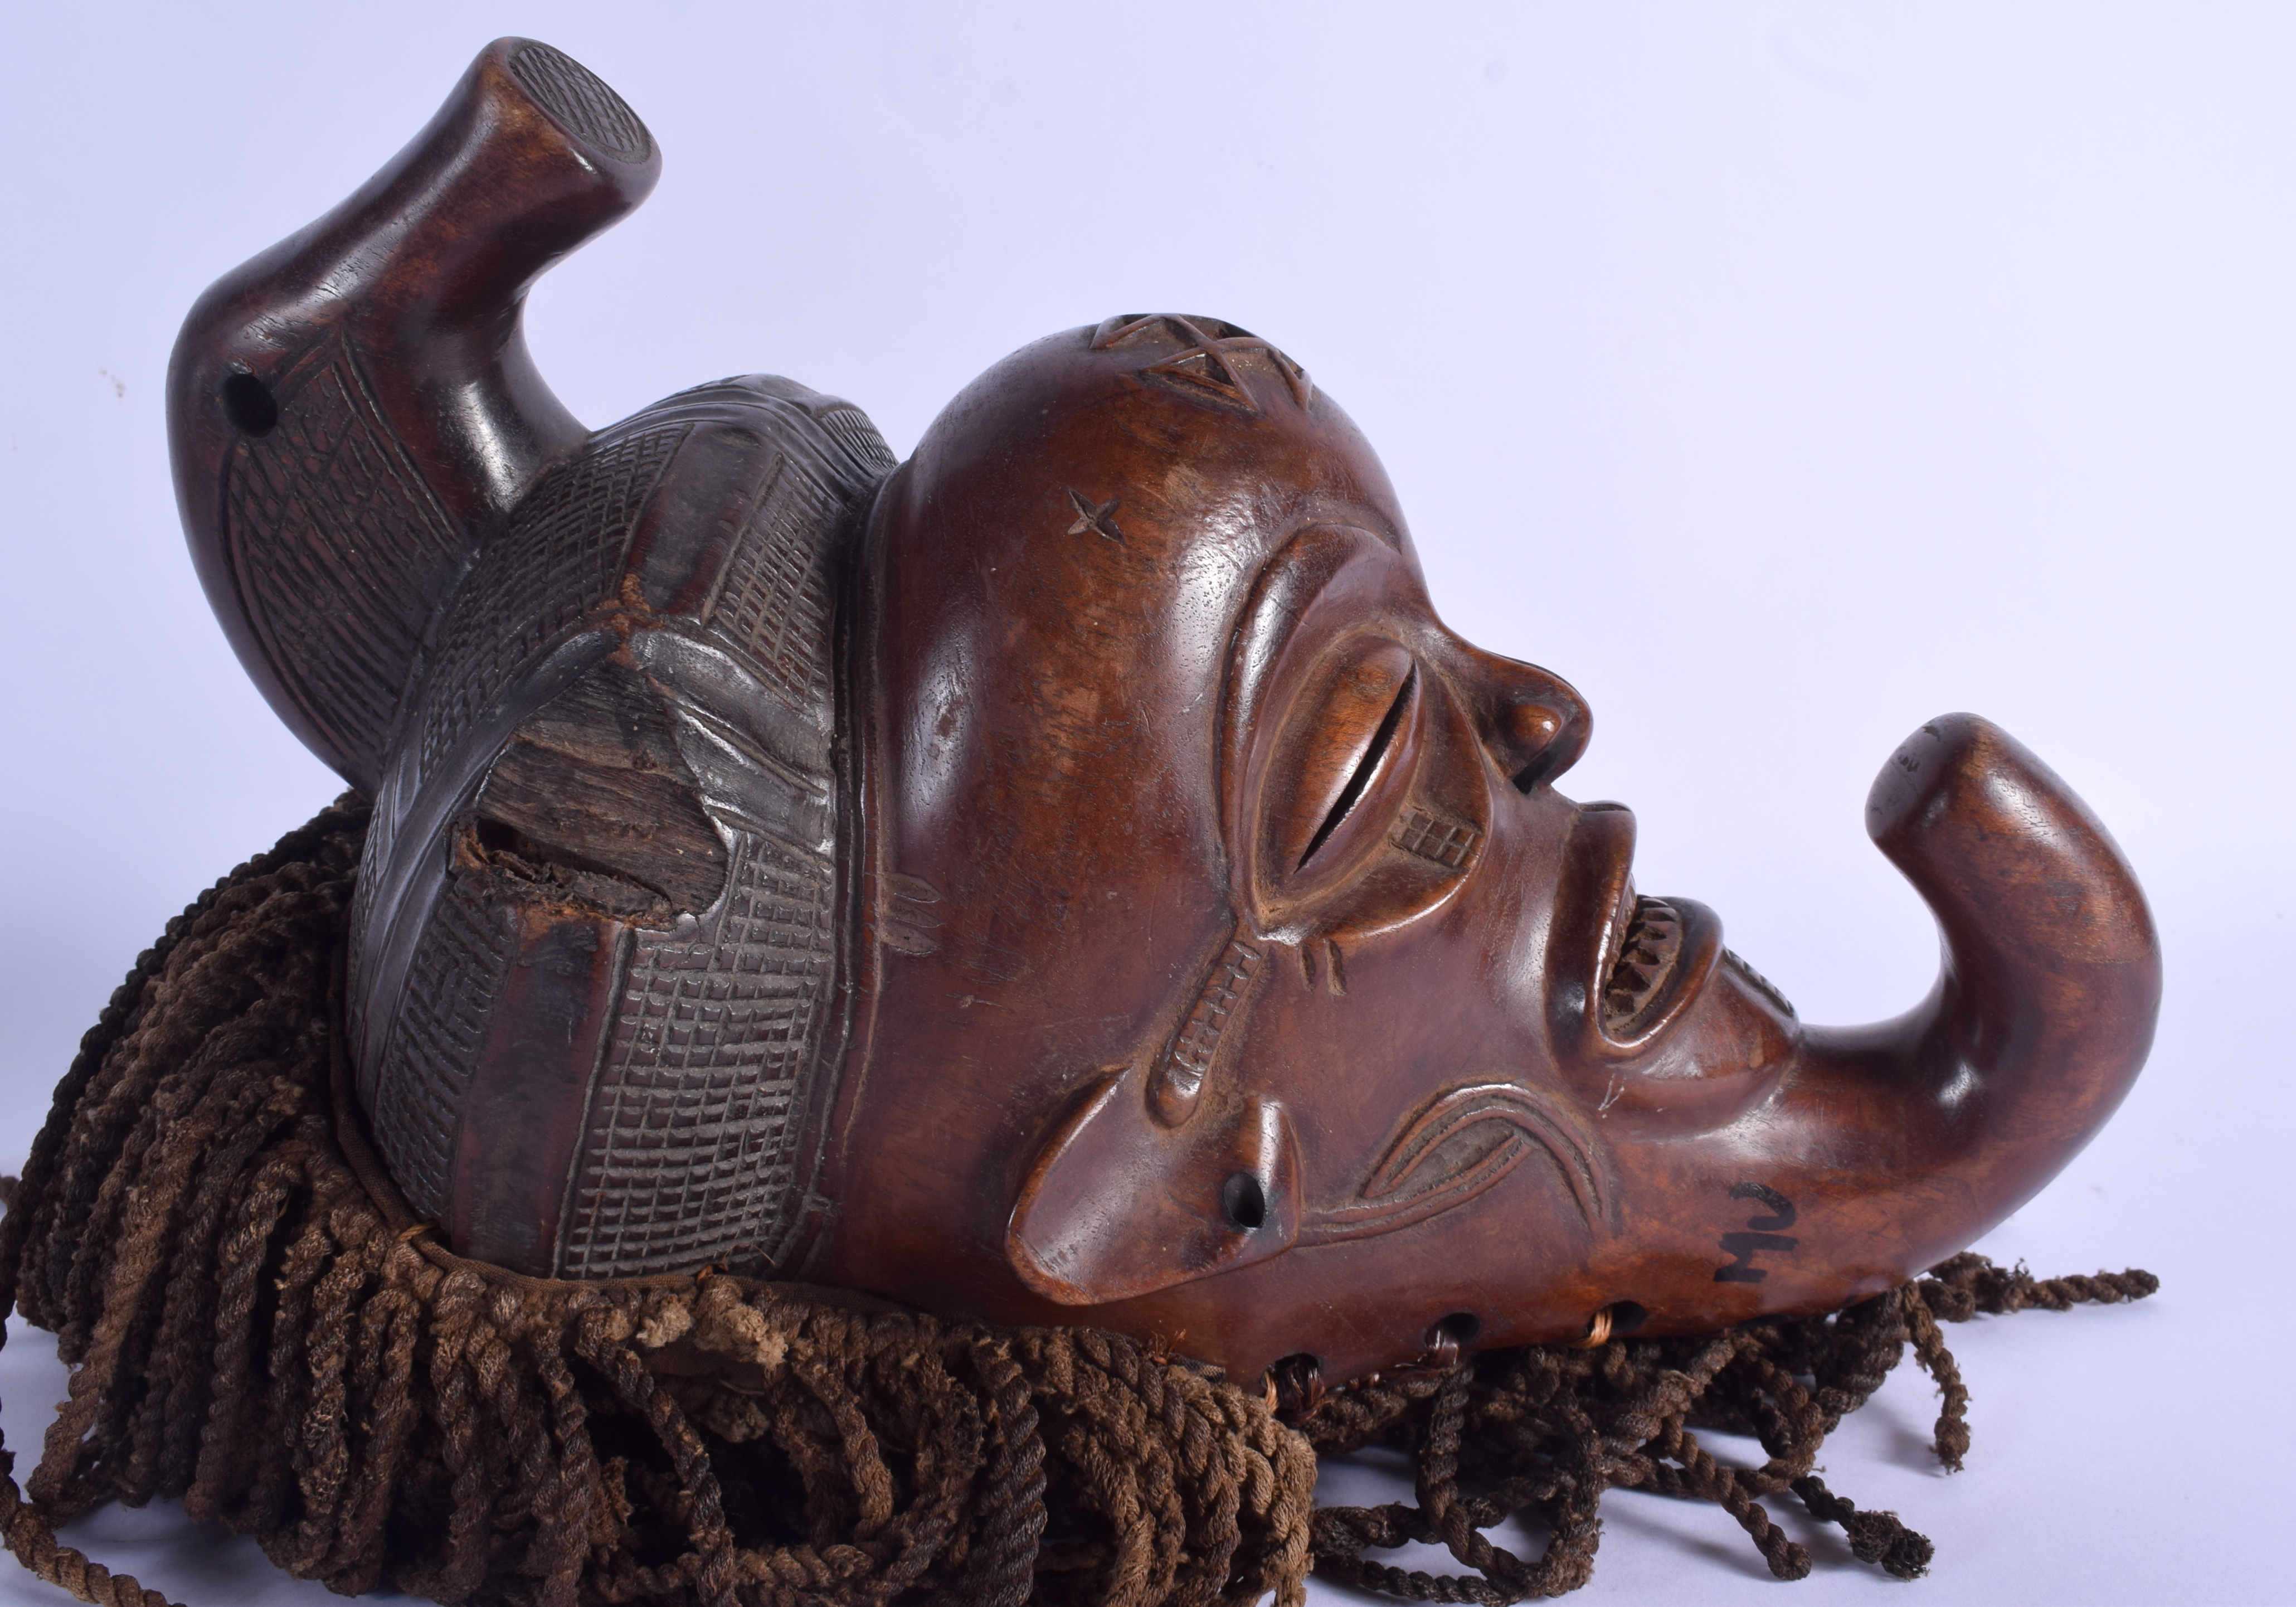 AN AFRICAN TRIBAL CHOKWE MASK decorated with motifs. Mask 30 cm x 14 cm. - Image 3 of 4